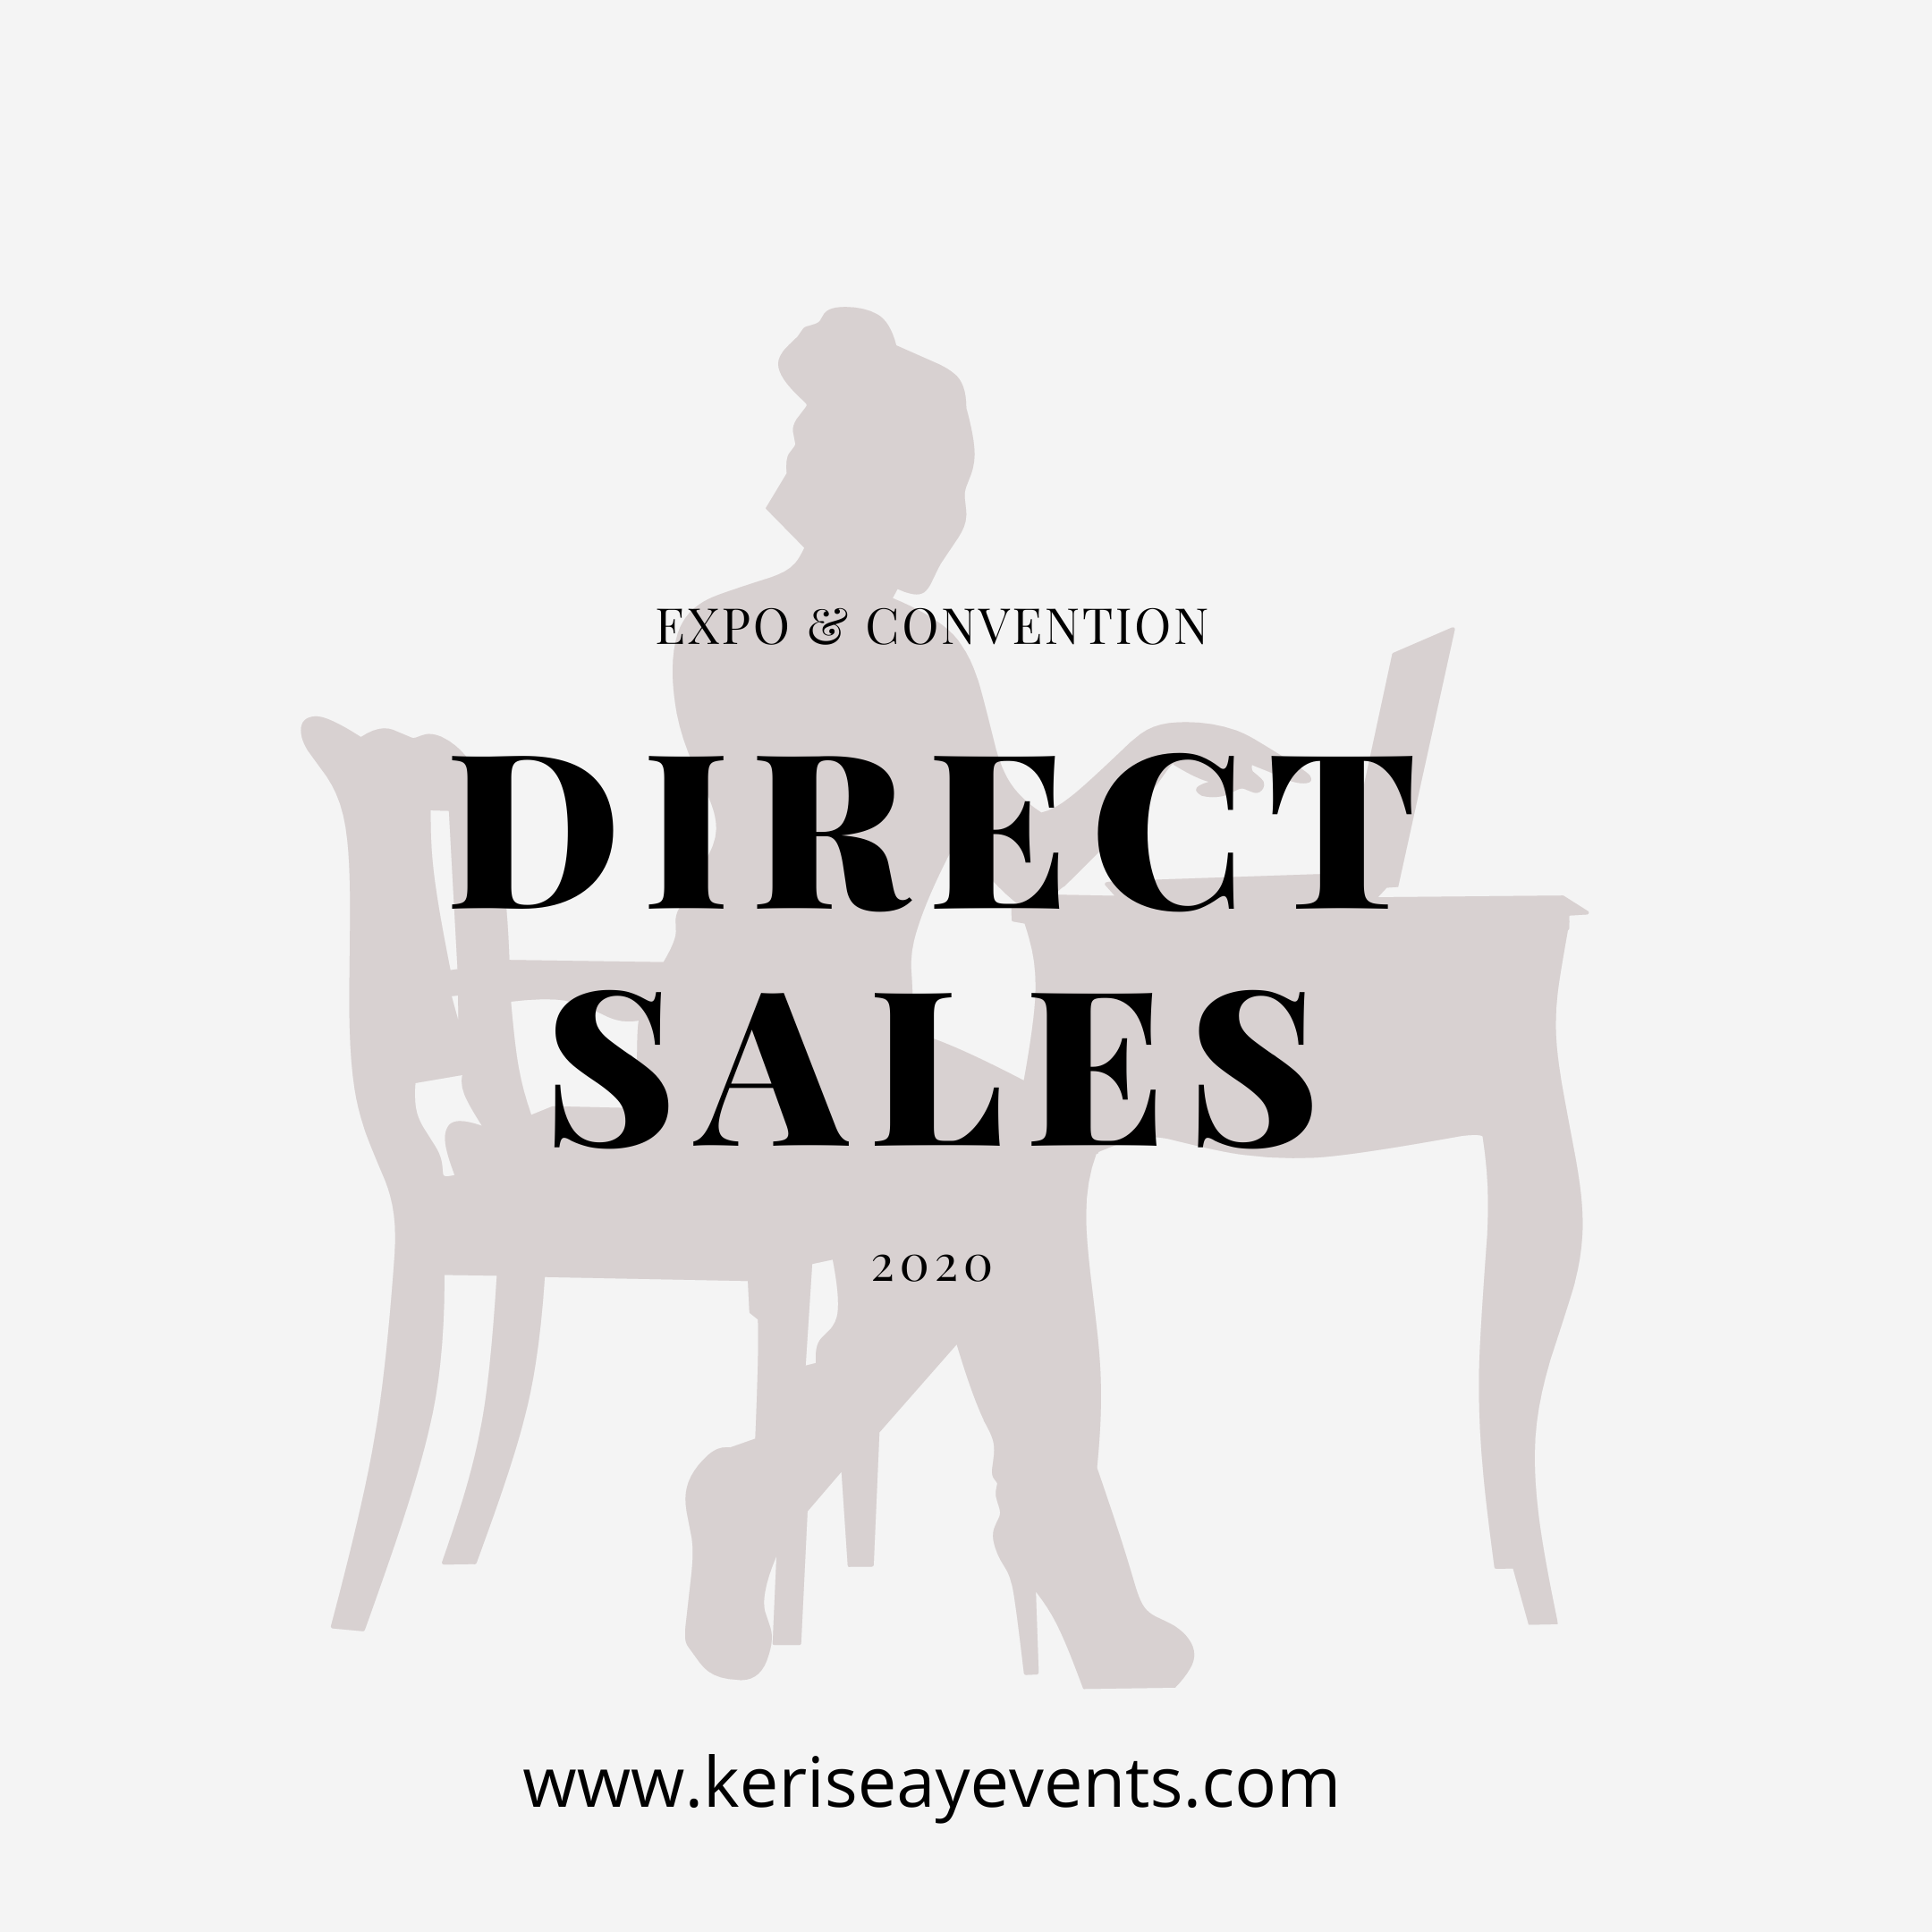 Direct Sales Rep Expo